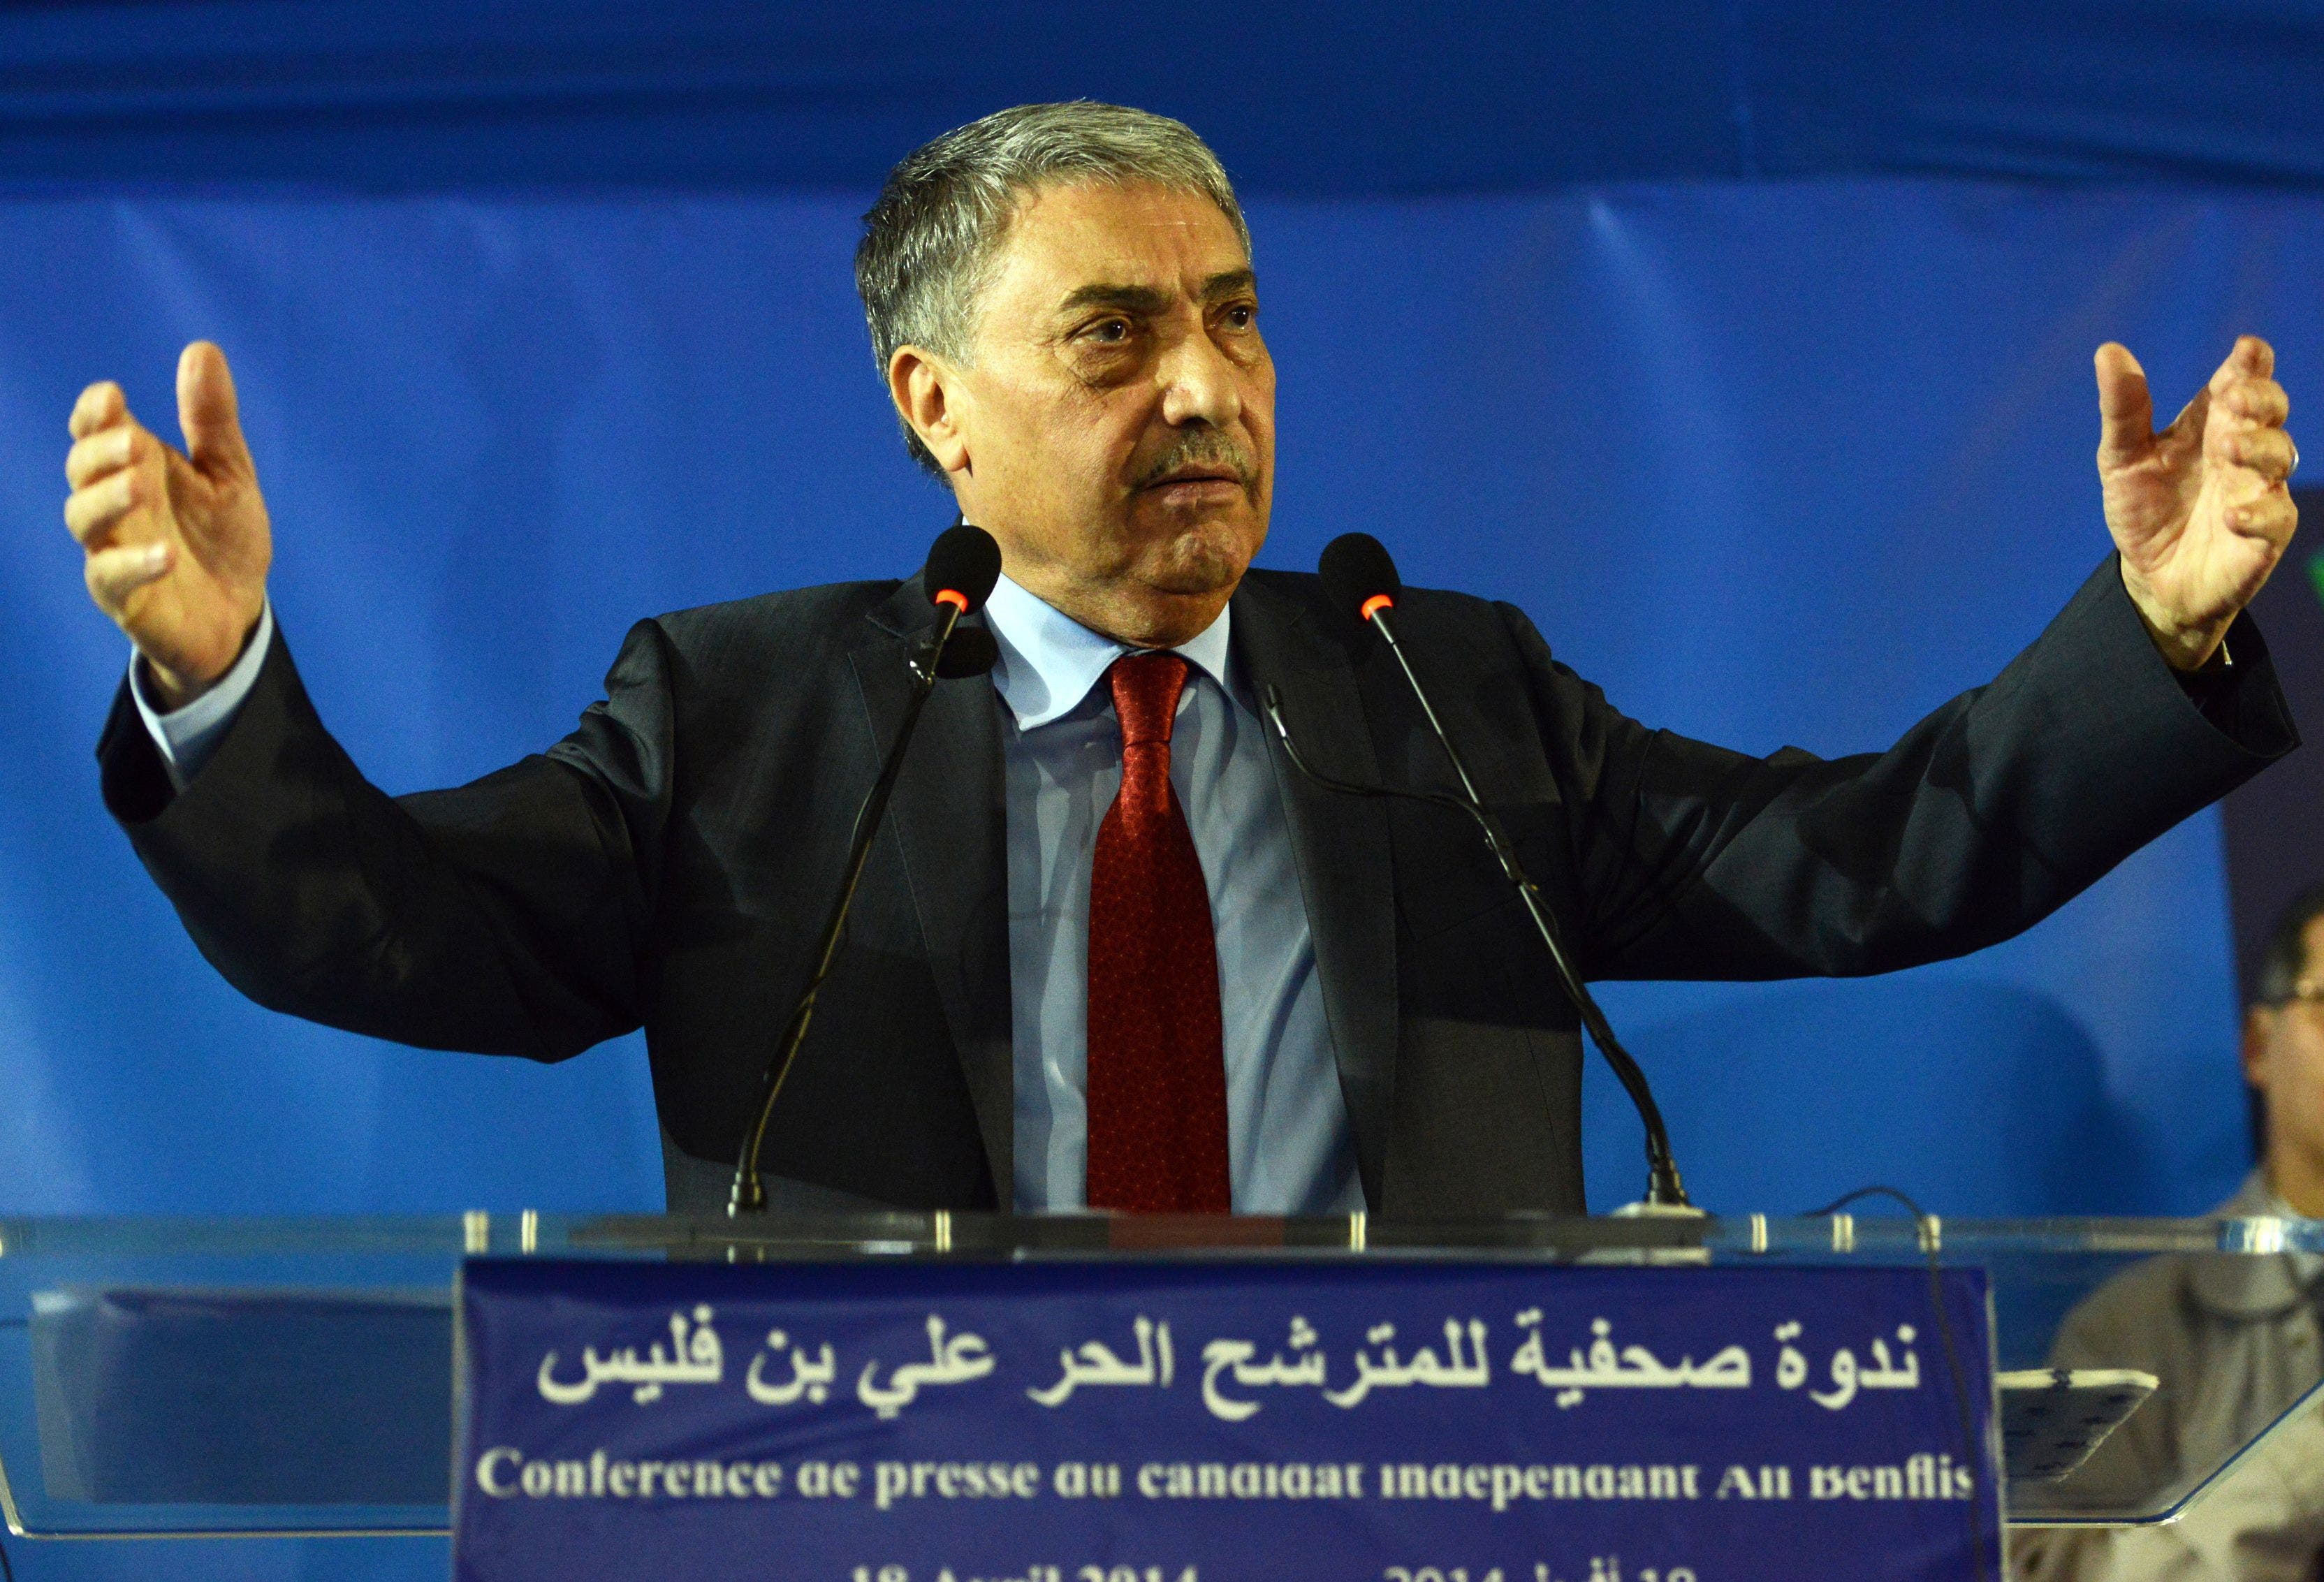 Algerian opposition leader Ali Benflis gestures during a press conference following his defeat in the presidential elections in Algiers on April 18, 2014. (AFP)